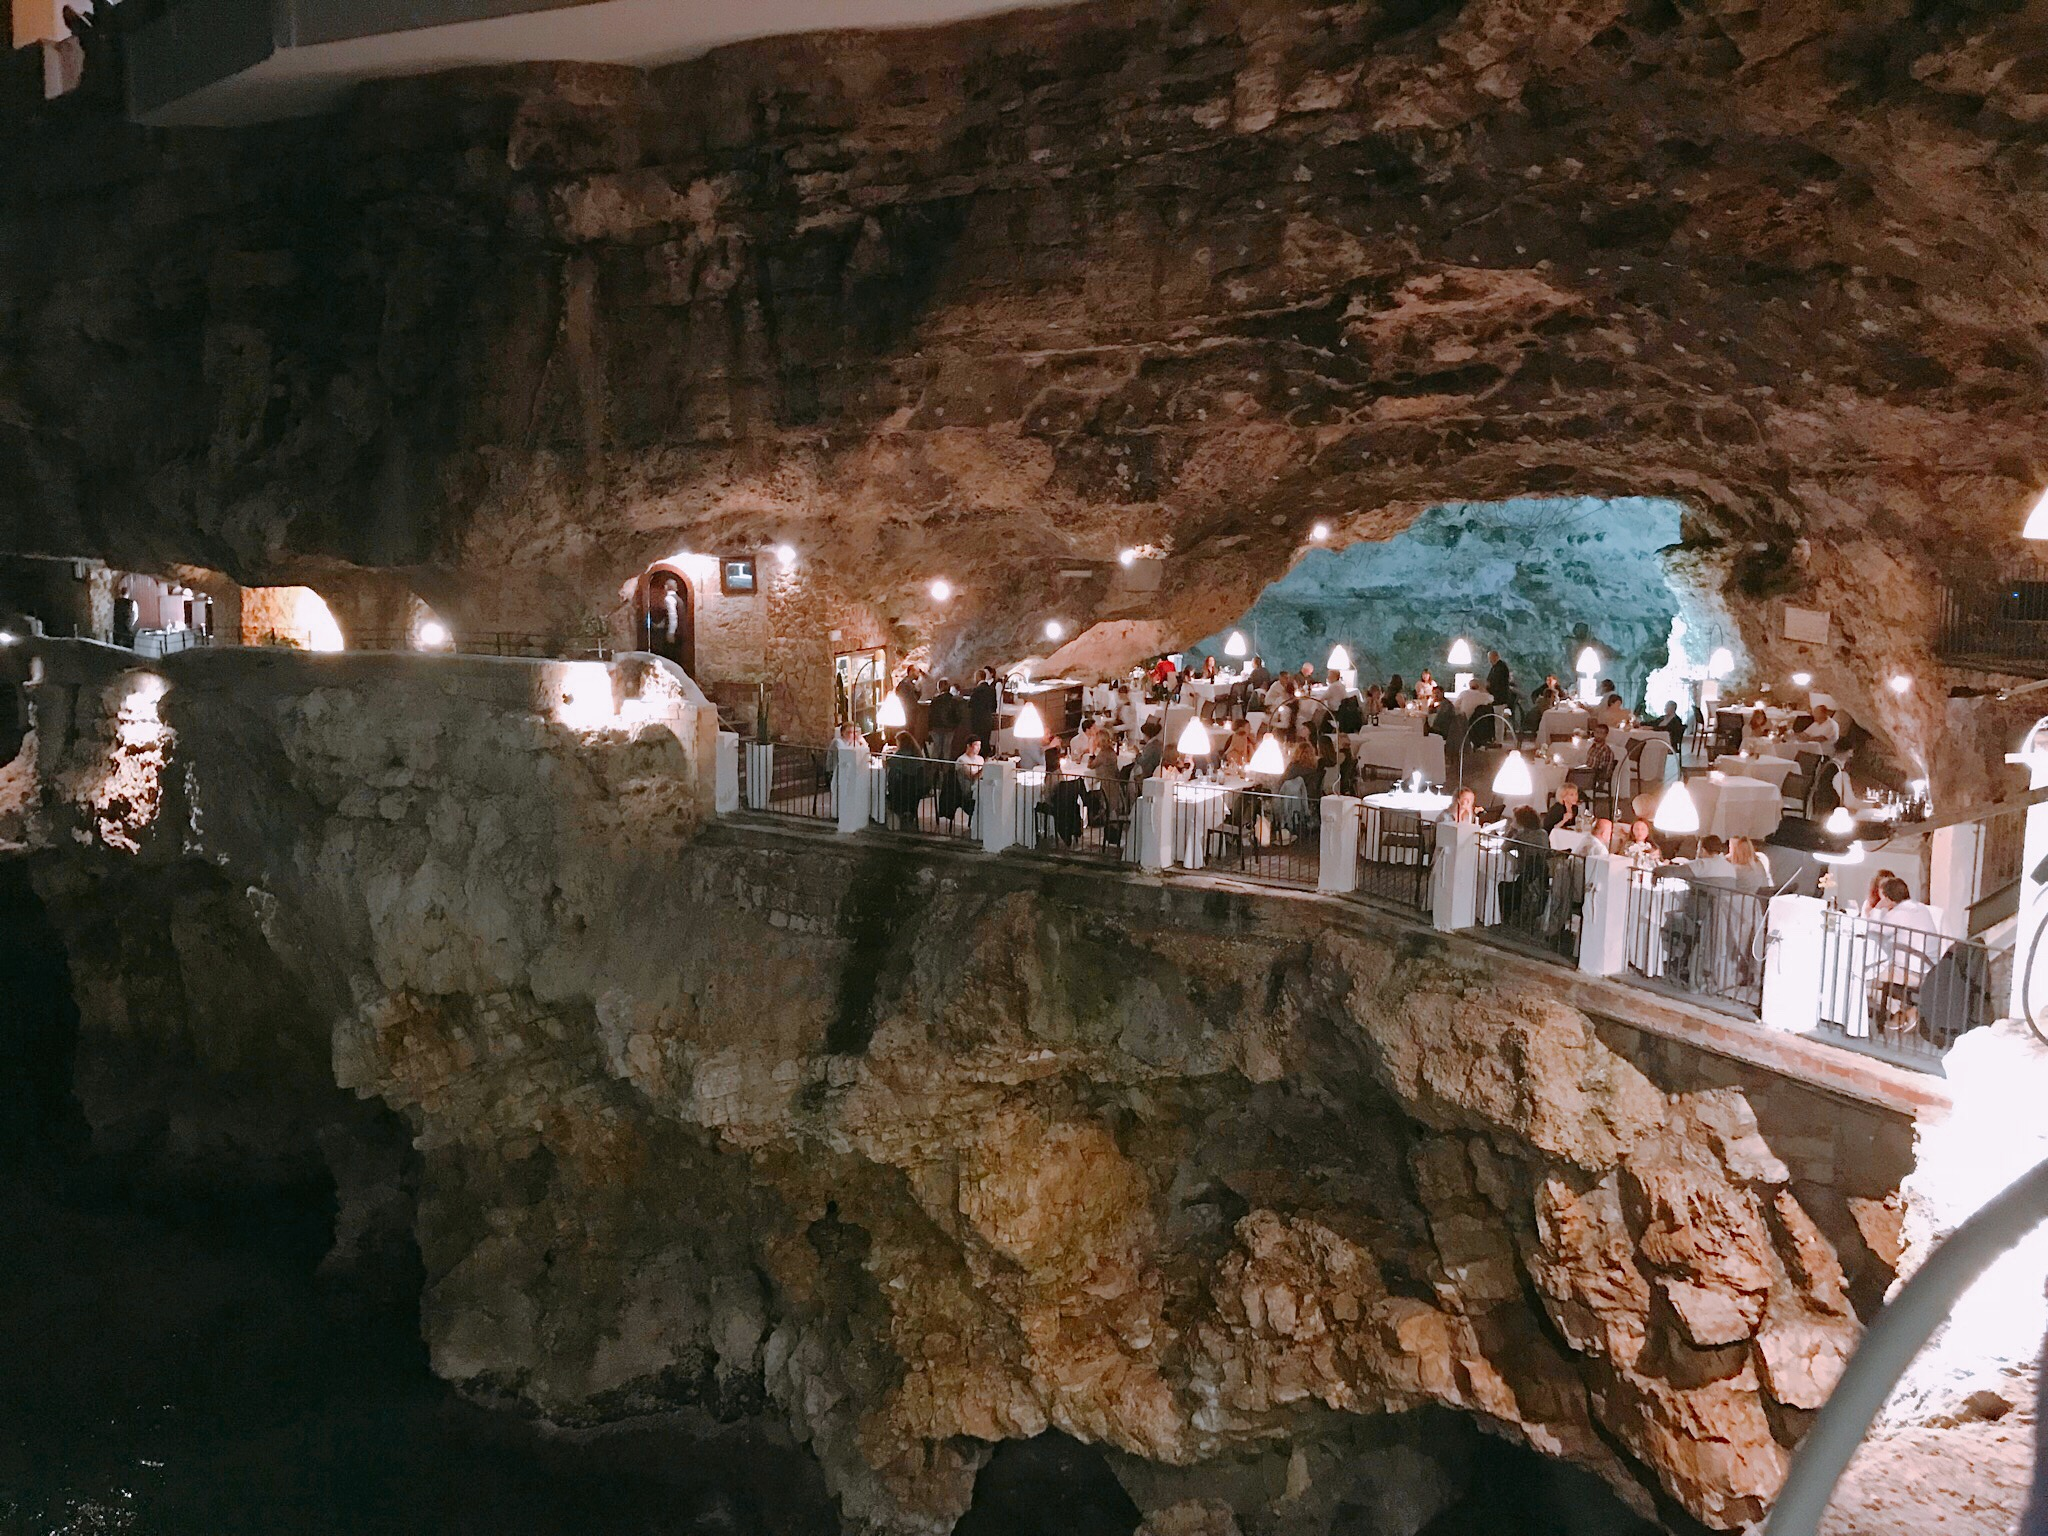 Polignano a Mare: Late Night at the Grotta Palazzese